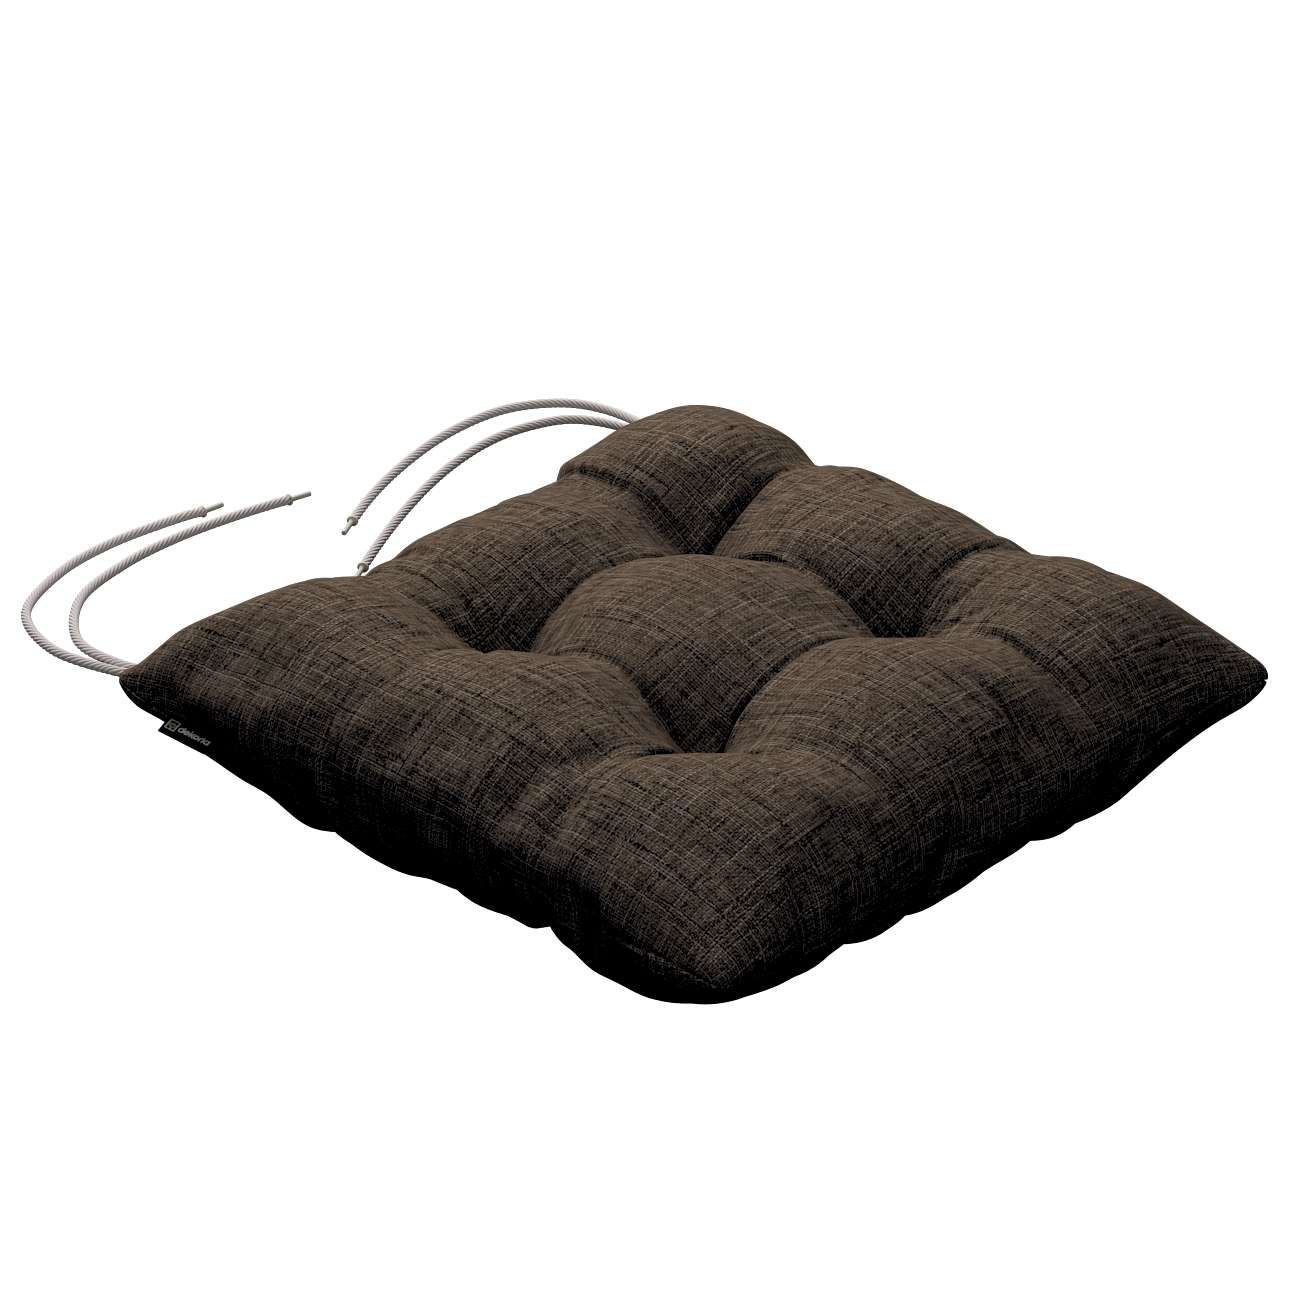 Jacek seat pad with ties 40 x 40 x 8 cm (16 x 16 x 3 inch) in collection Living, fabric: 106-92